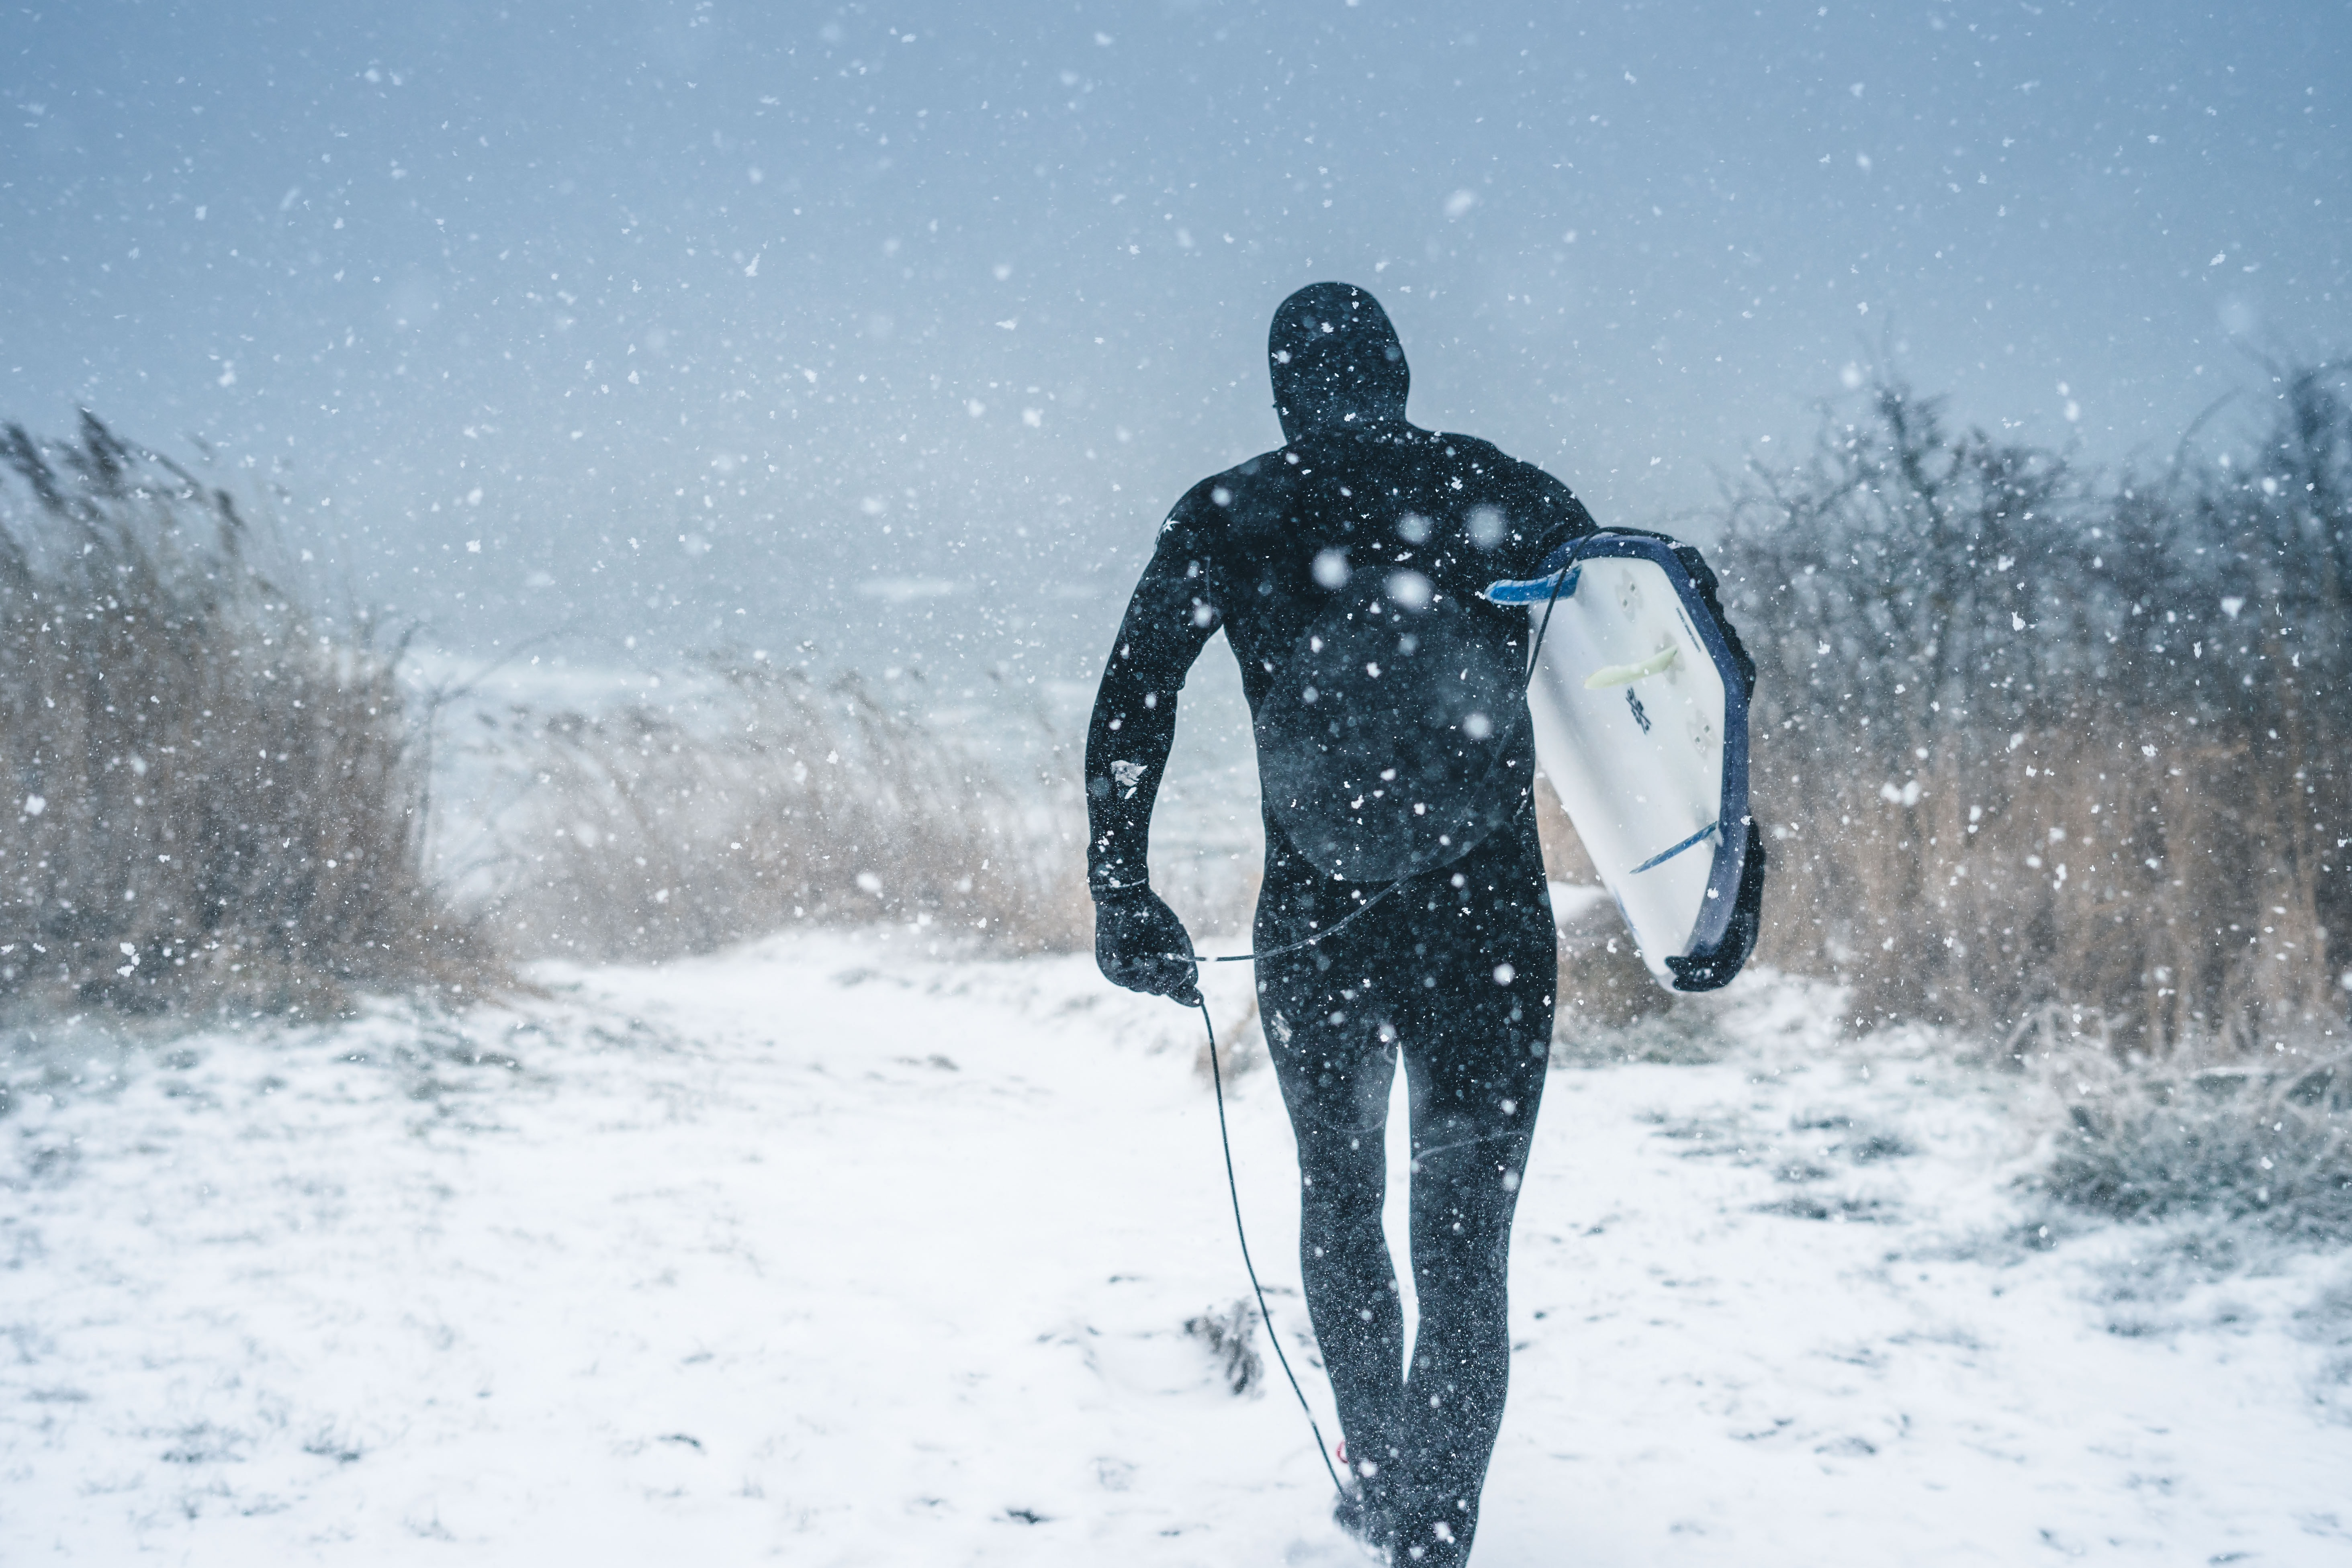 man carrying surfboard walking on snow